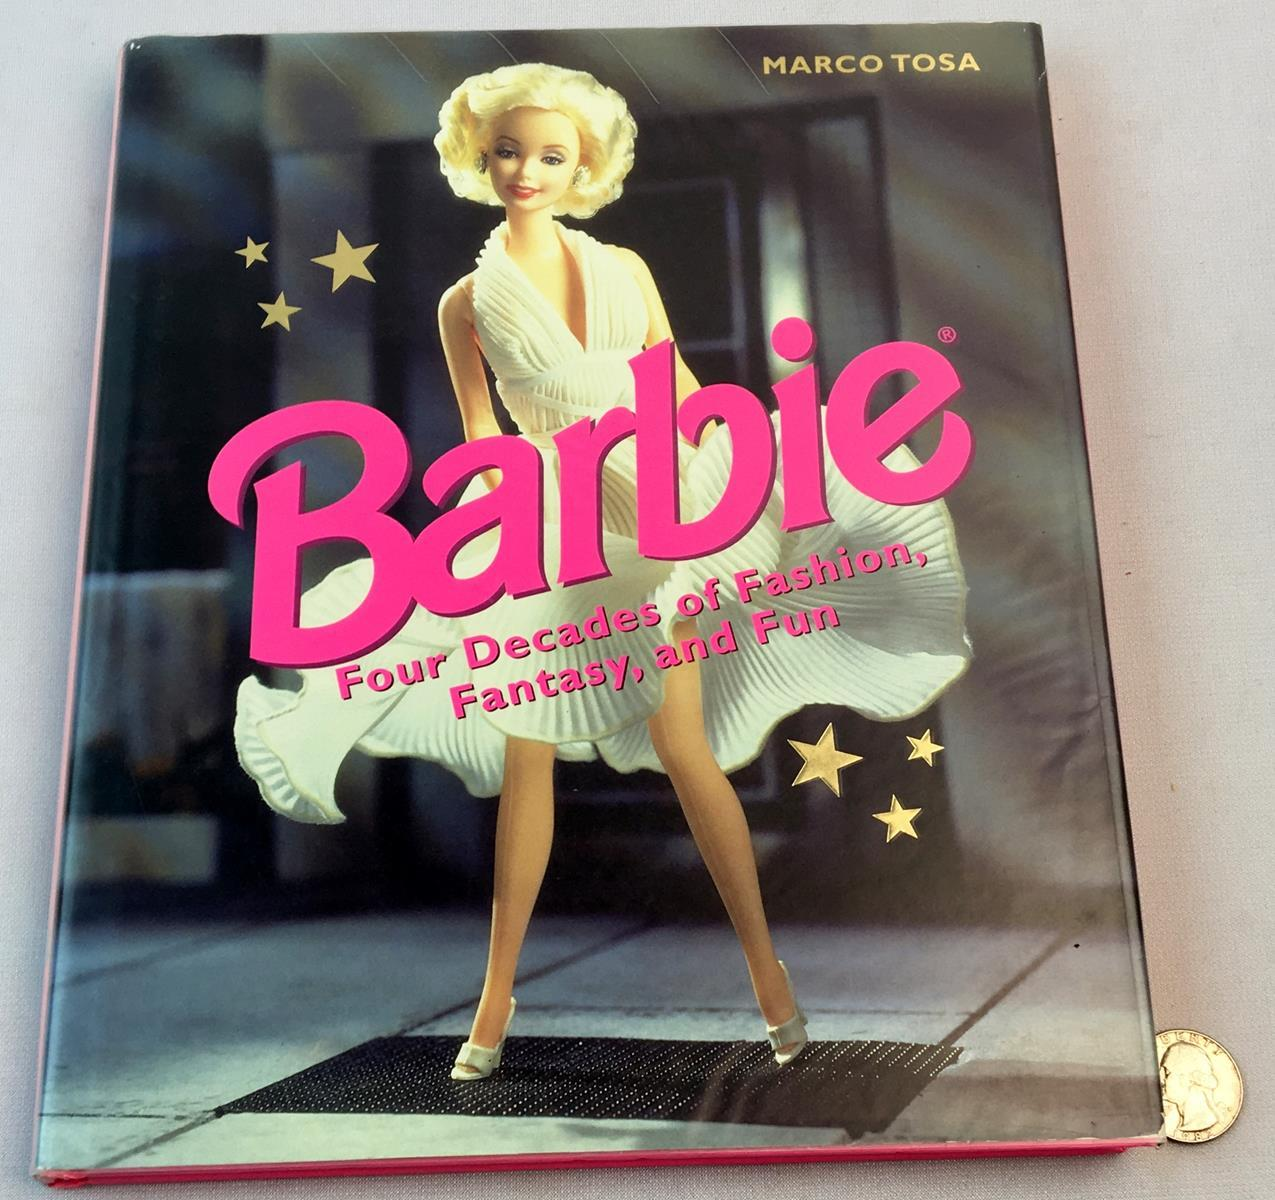 1998 Barbie: Four Decades of Fashion, Fantasy and Fun by Marco Tosa w/ Dust Jacket